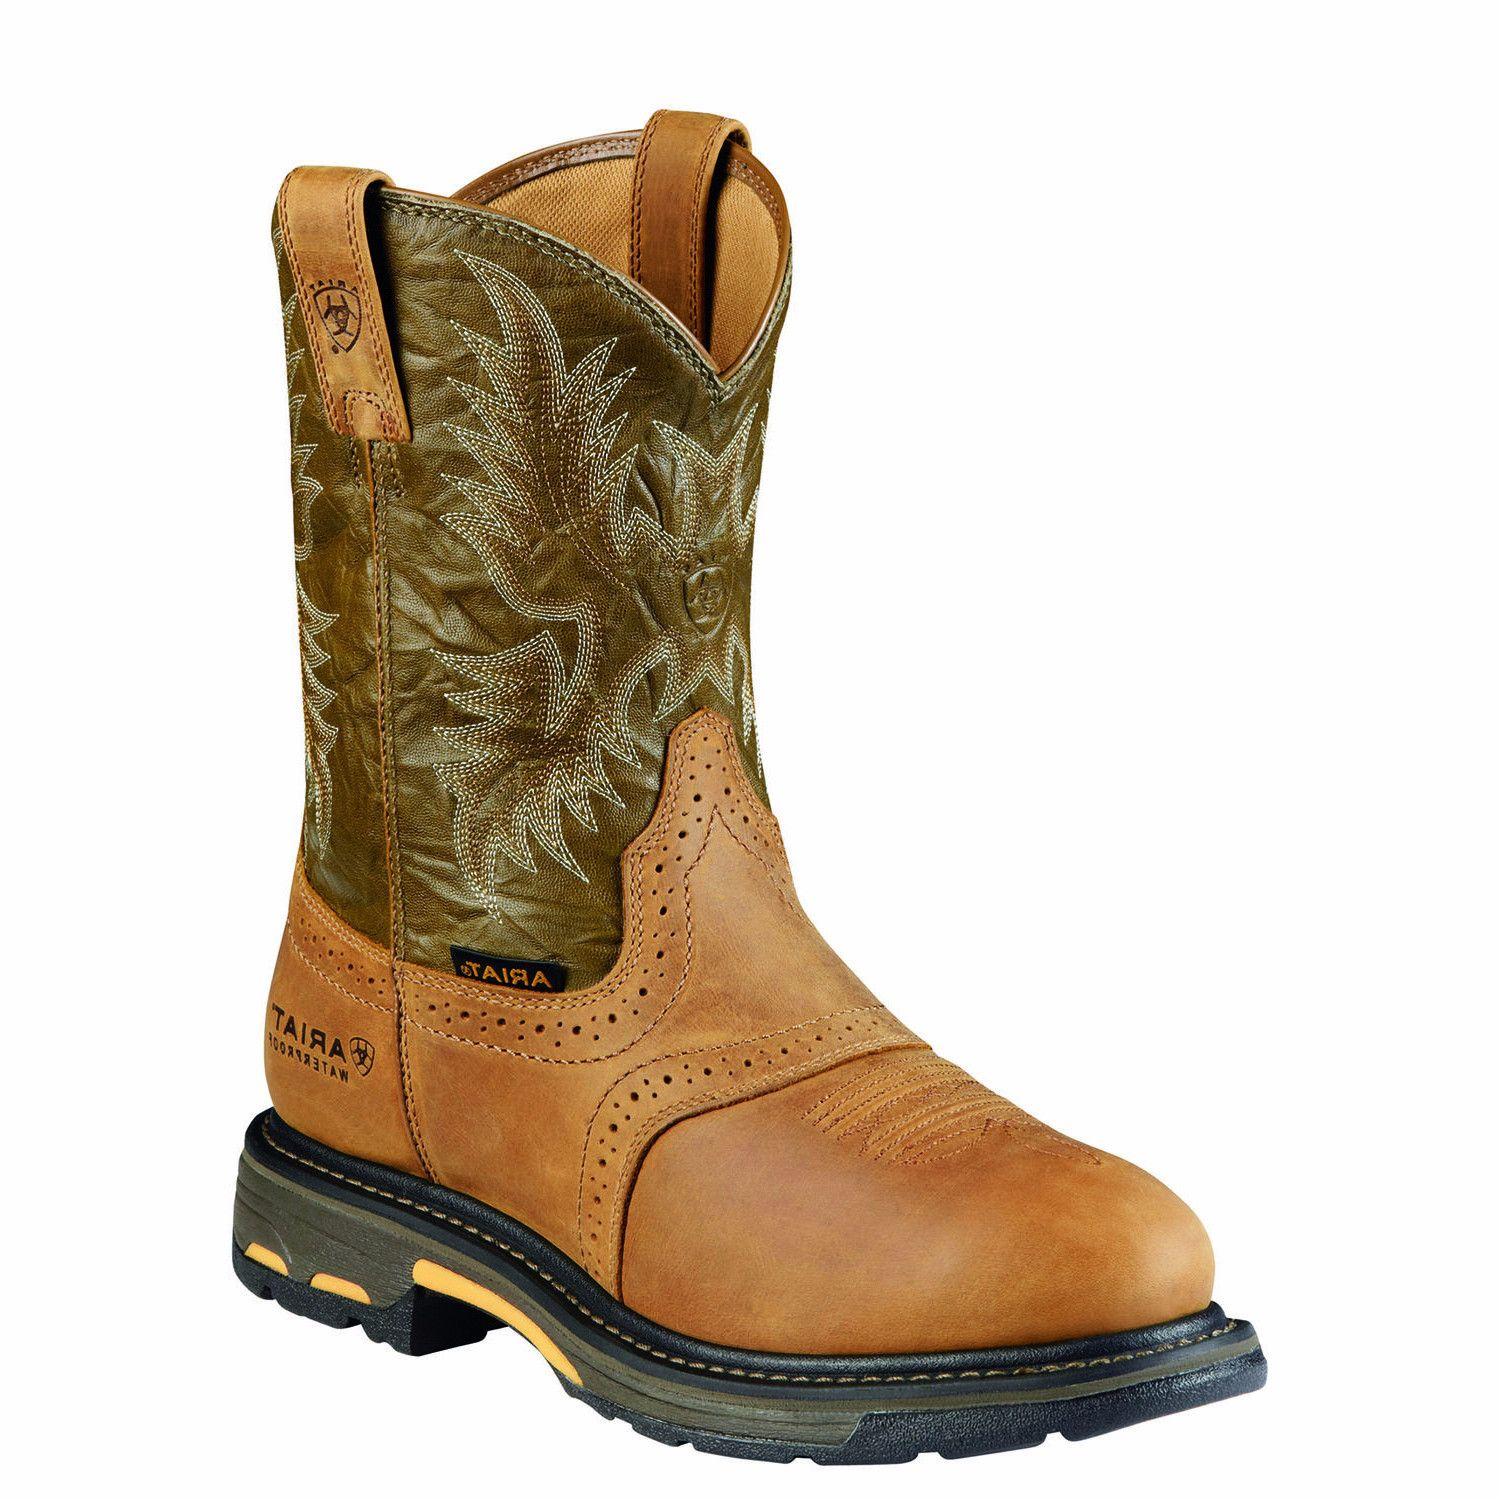 a48043ac455 https://www.wildwestbootstore.com/ daily https://www ...